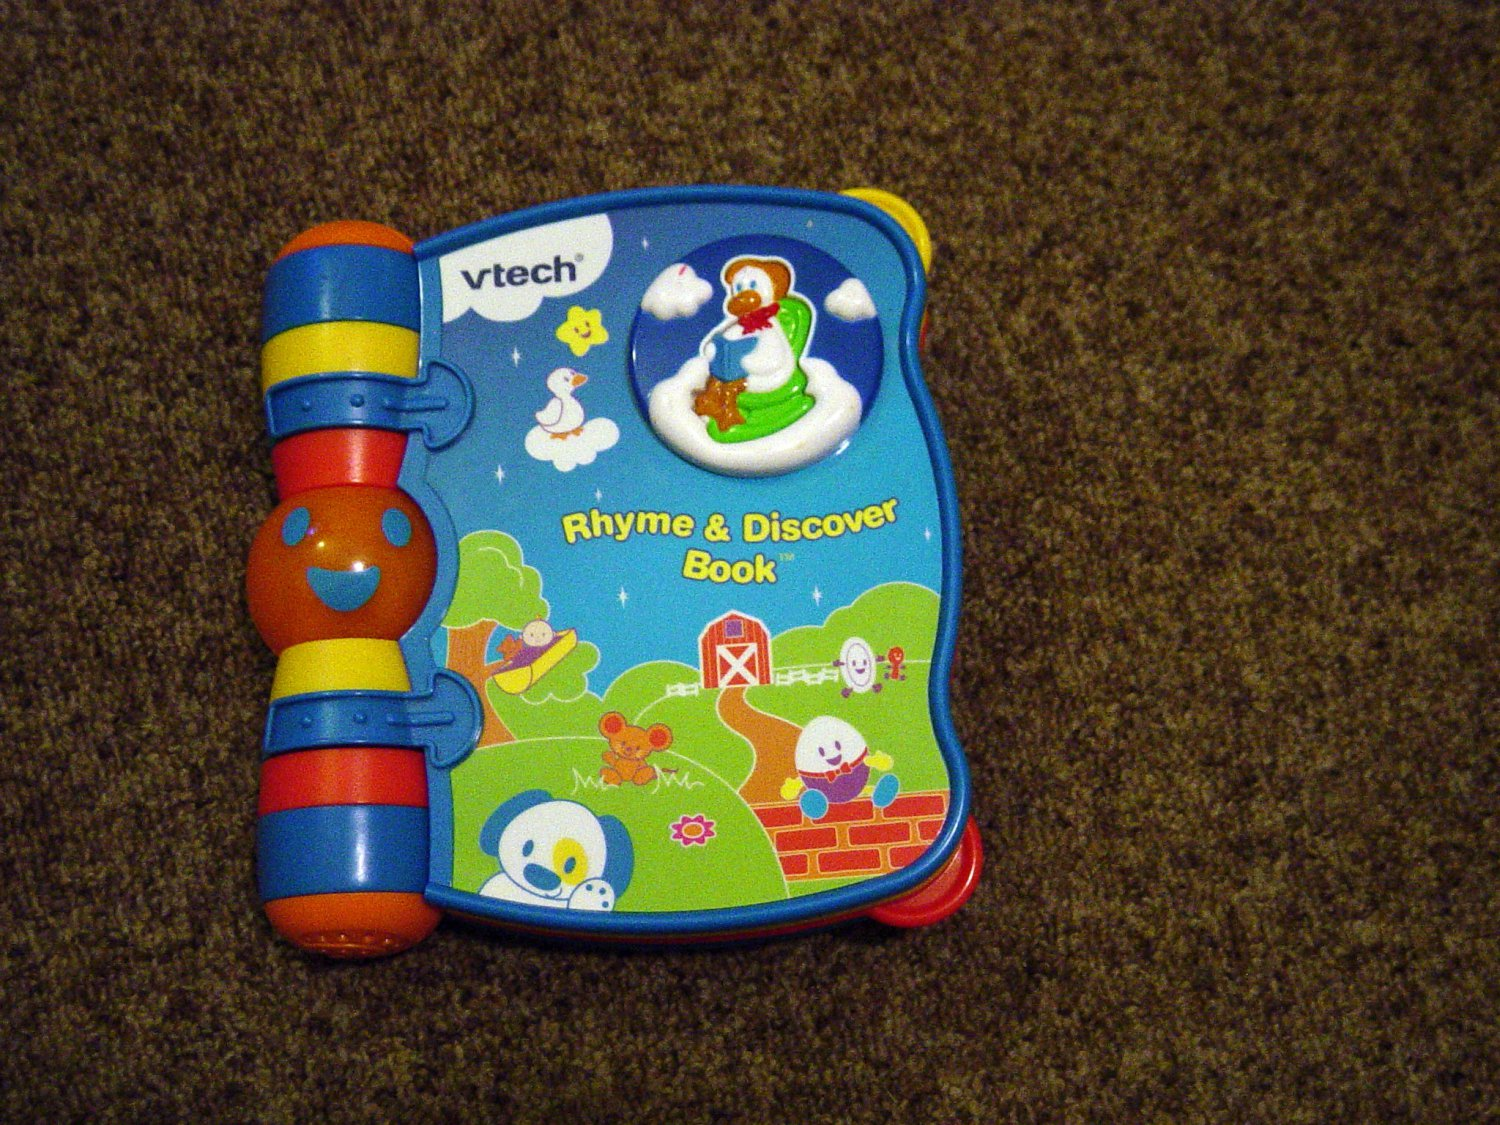 Vtech baby rhyme amp discover musical talking book 600399